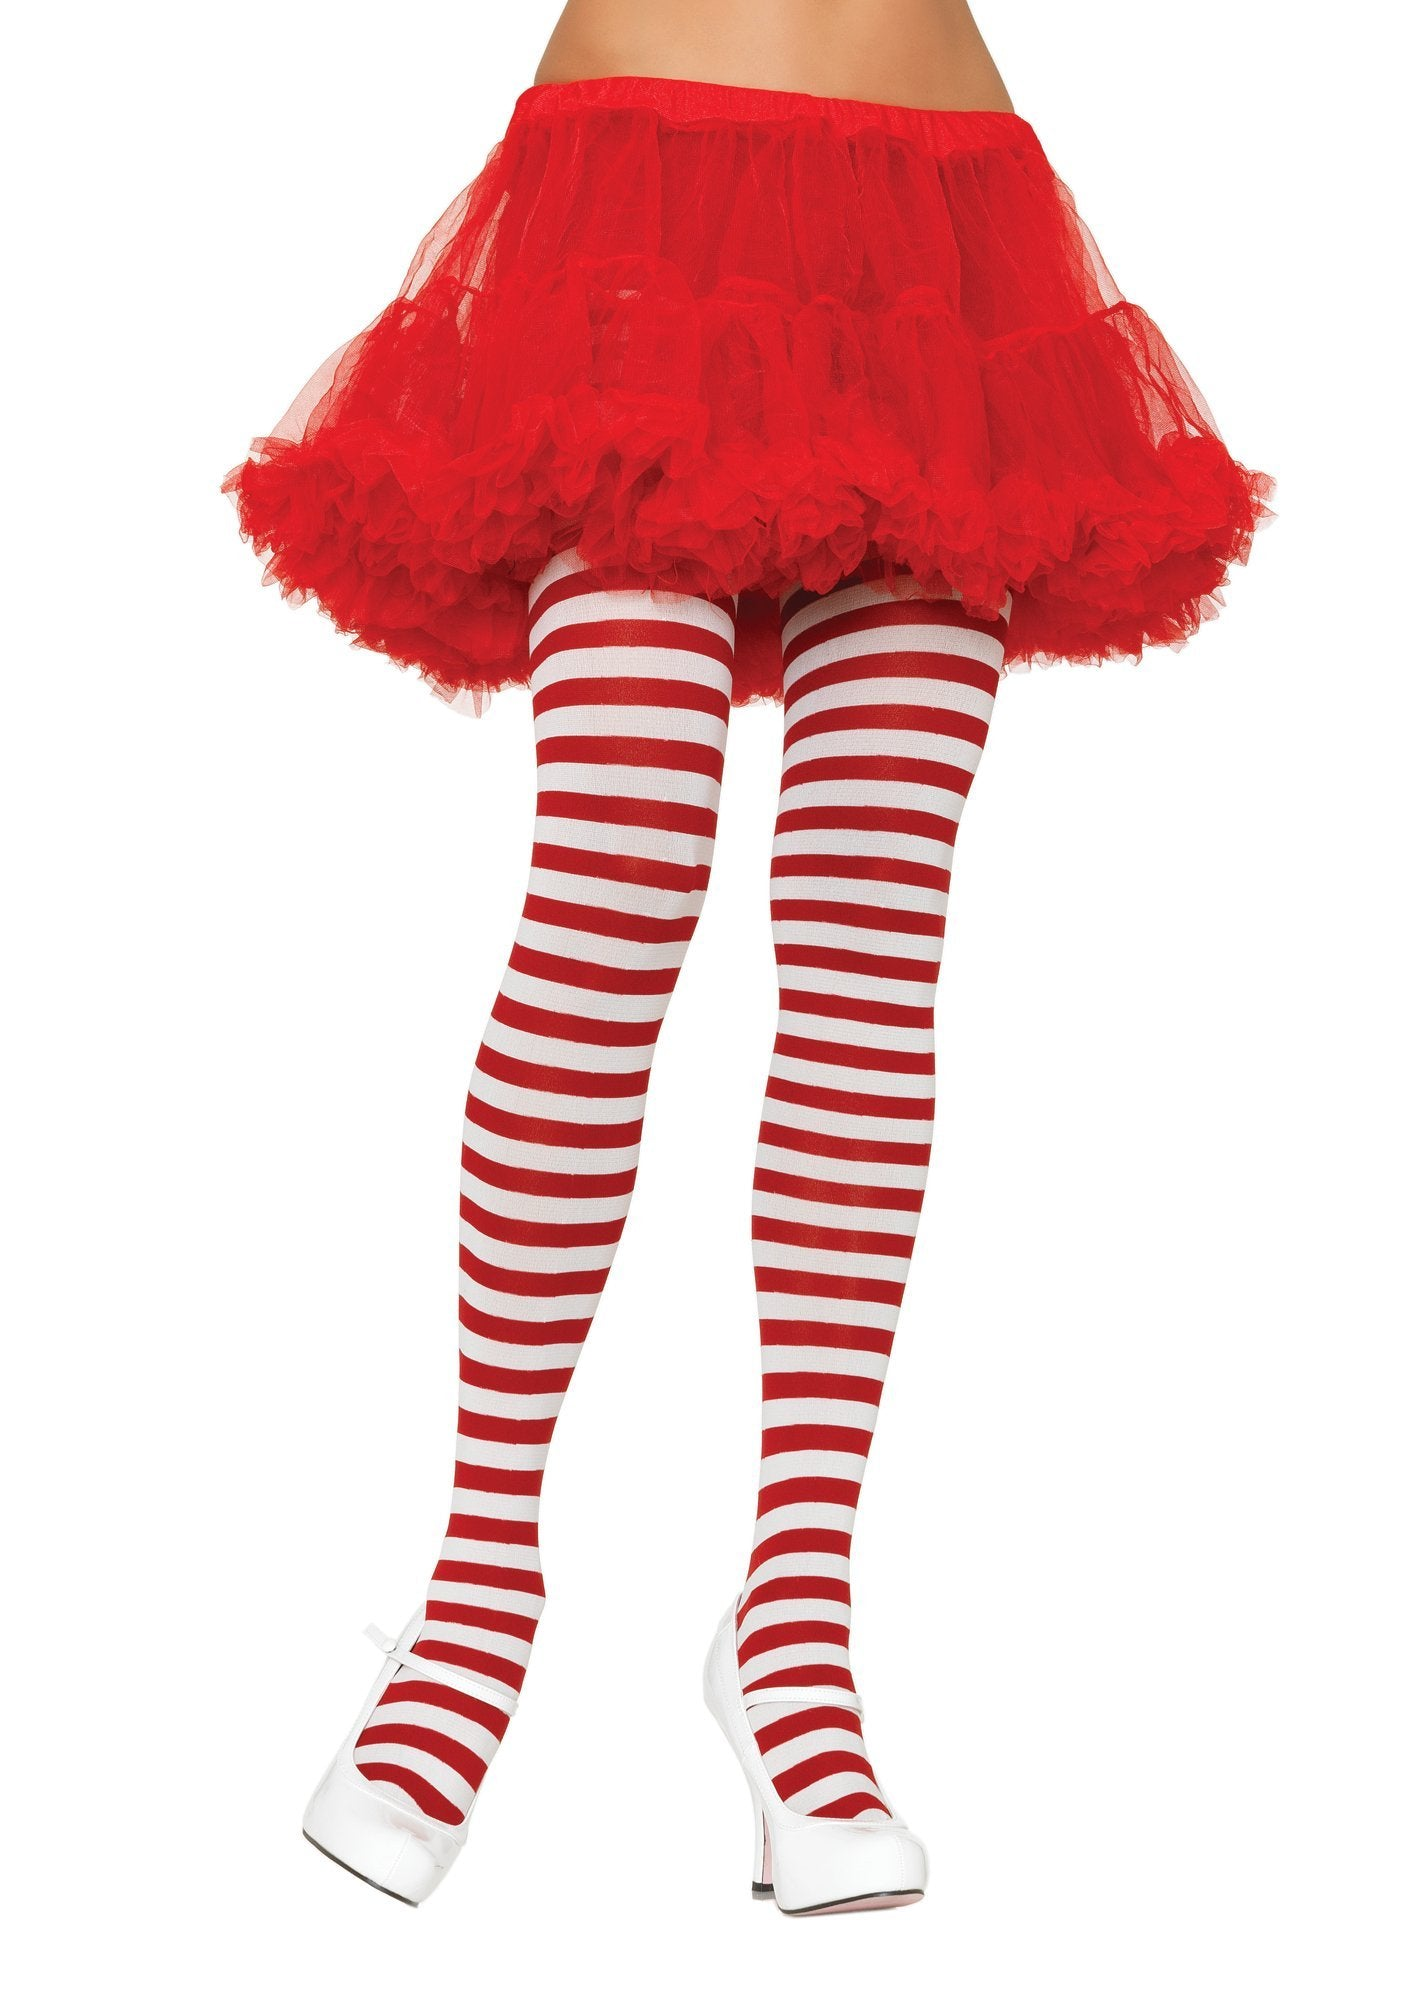 Leg Avenue Costume Accessories WHITE/RED / O/S Adult Nylon Stripe Tights